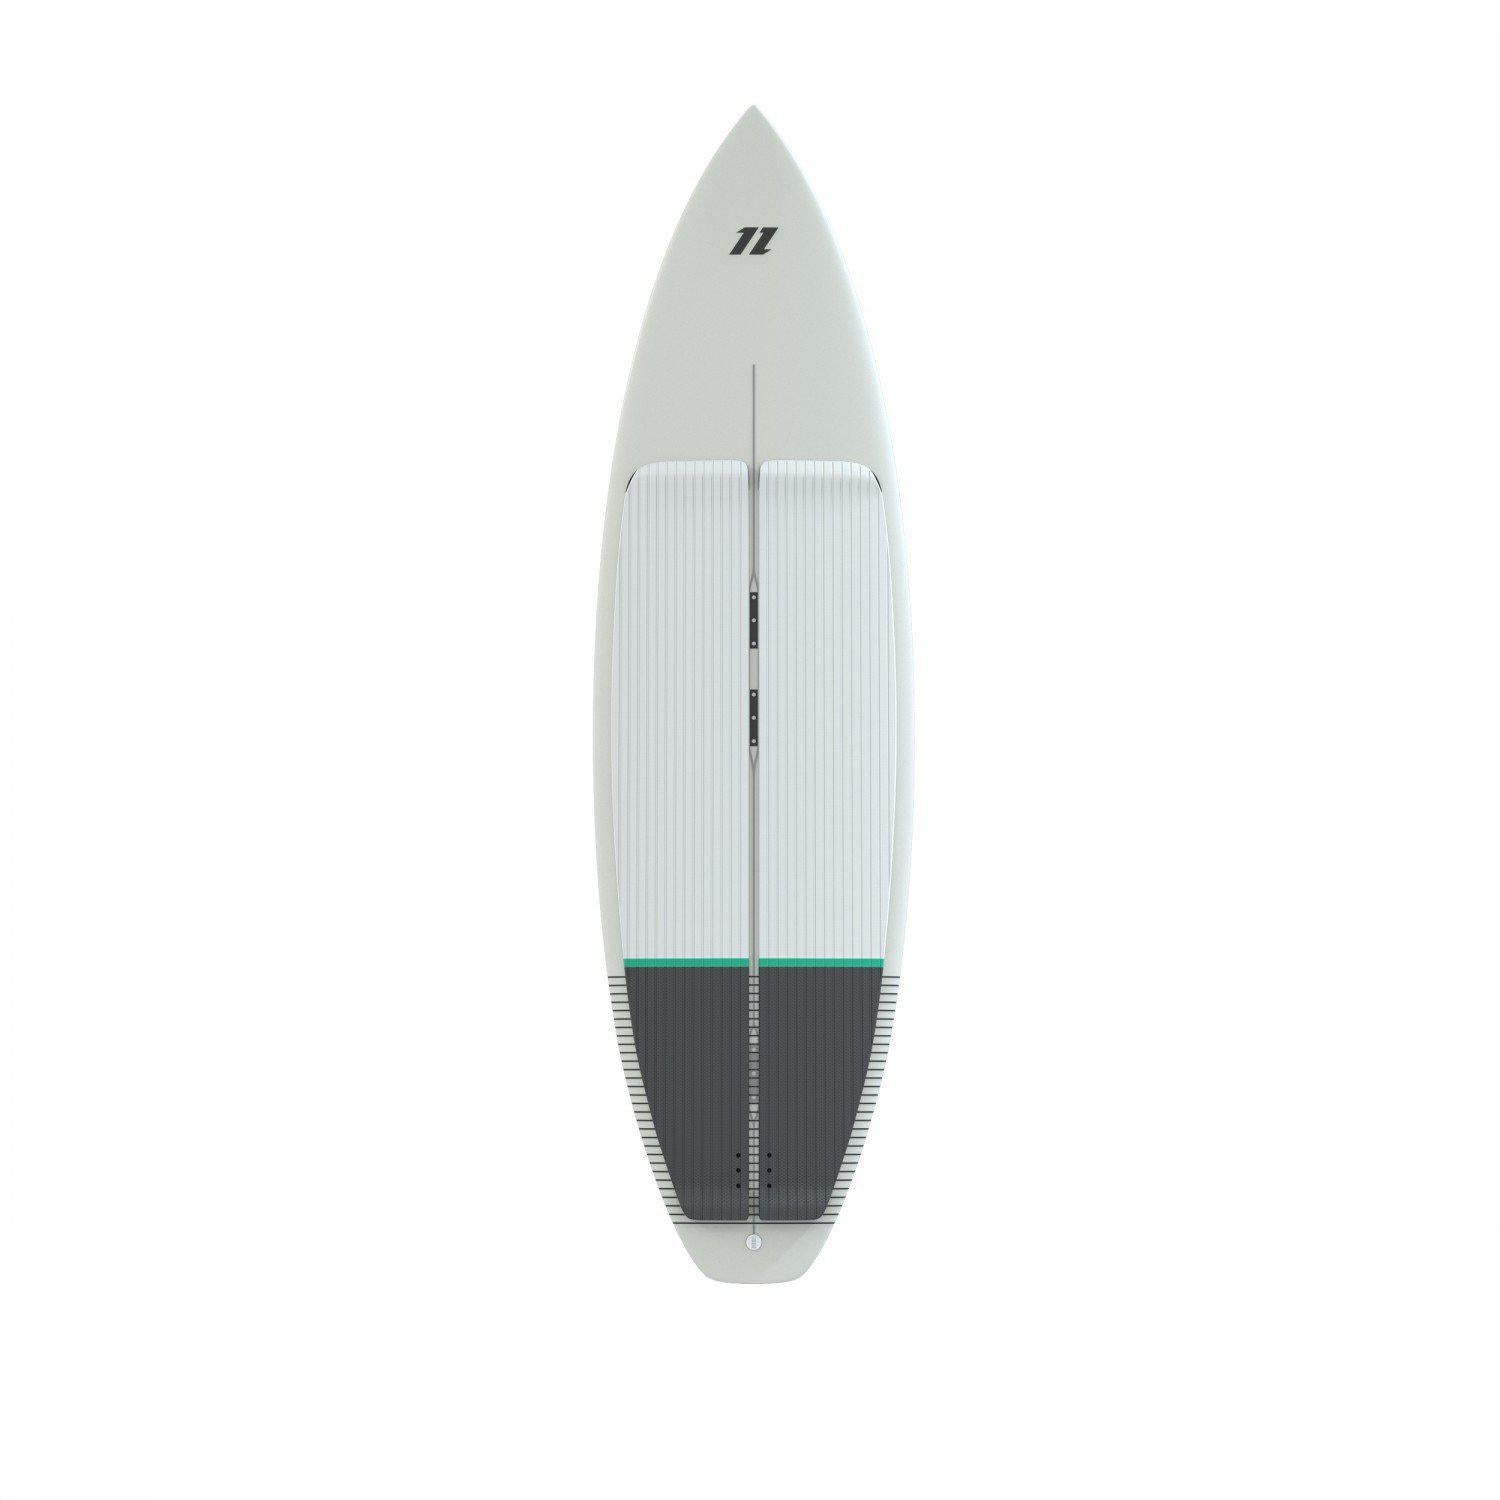 2020 North Charge Kite Surfboard-Big Winds